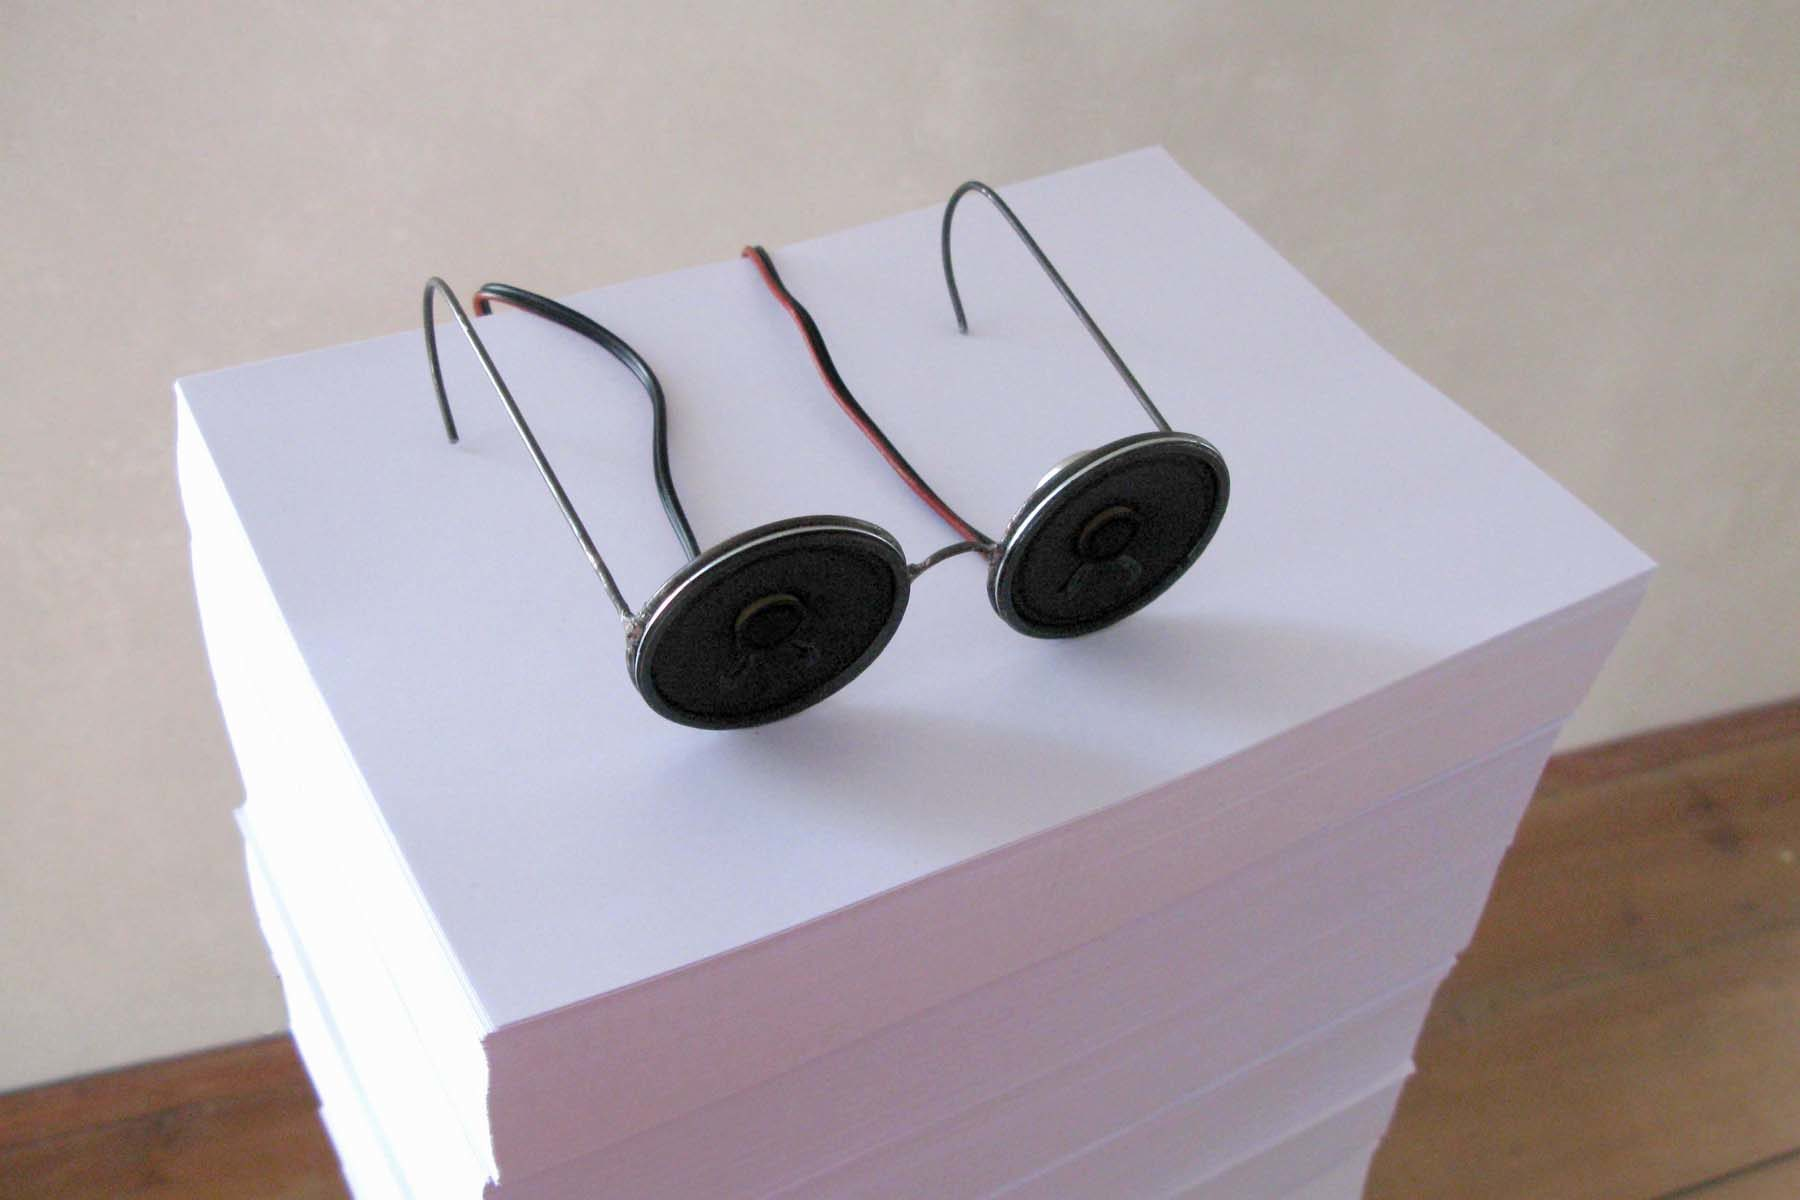 Jacopo Mazzonelli, Words, 2010, metal, loudspeakers, stereo set,  paper